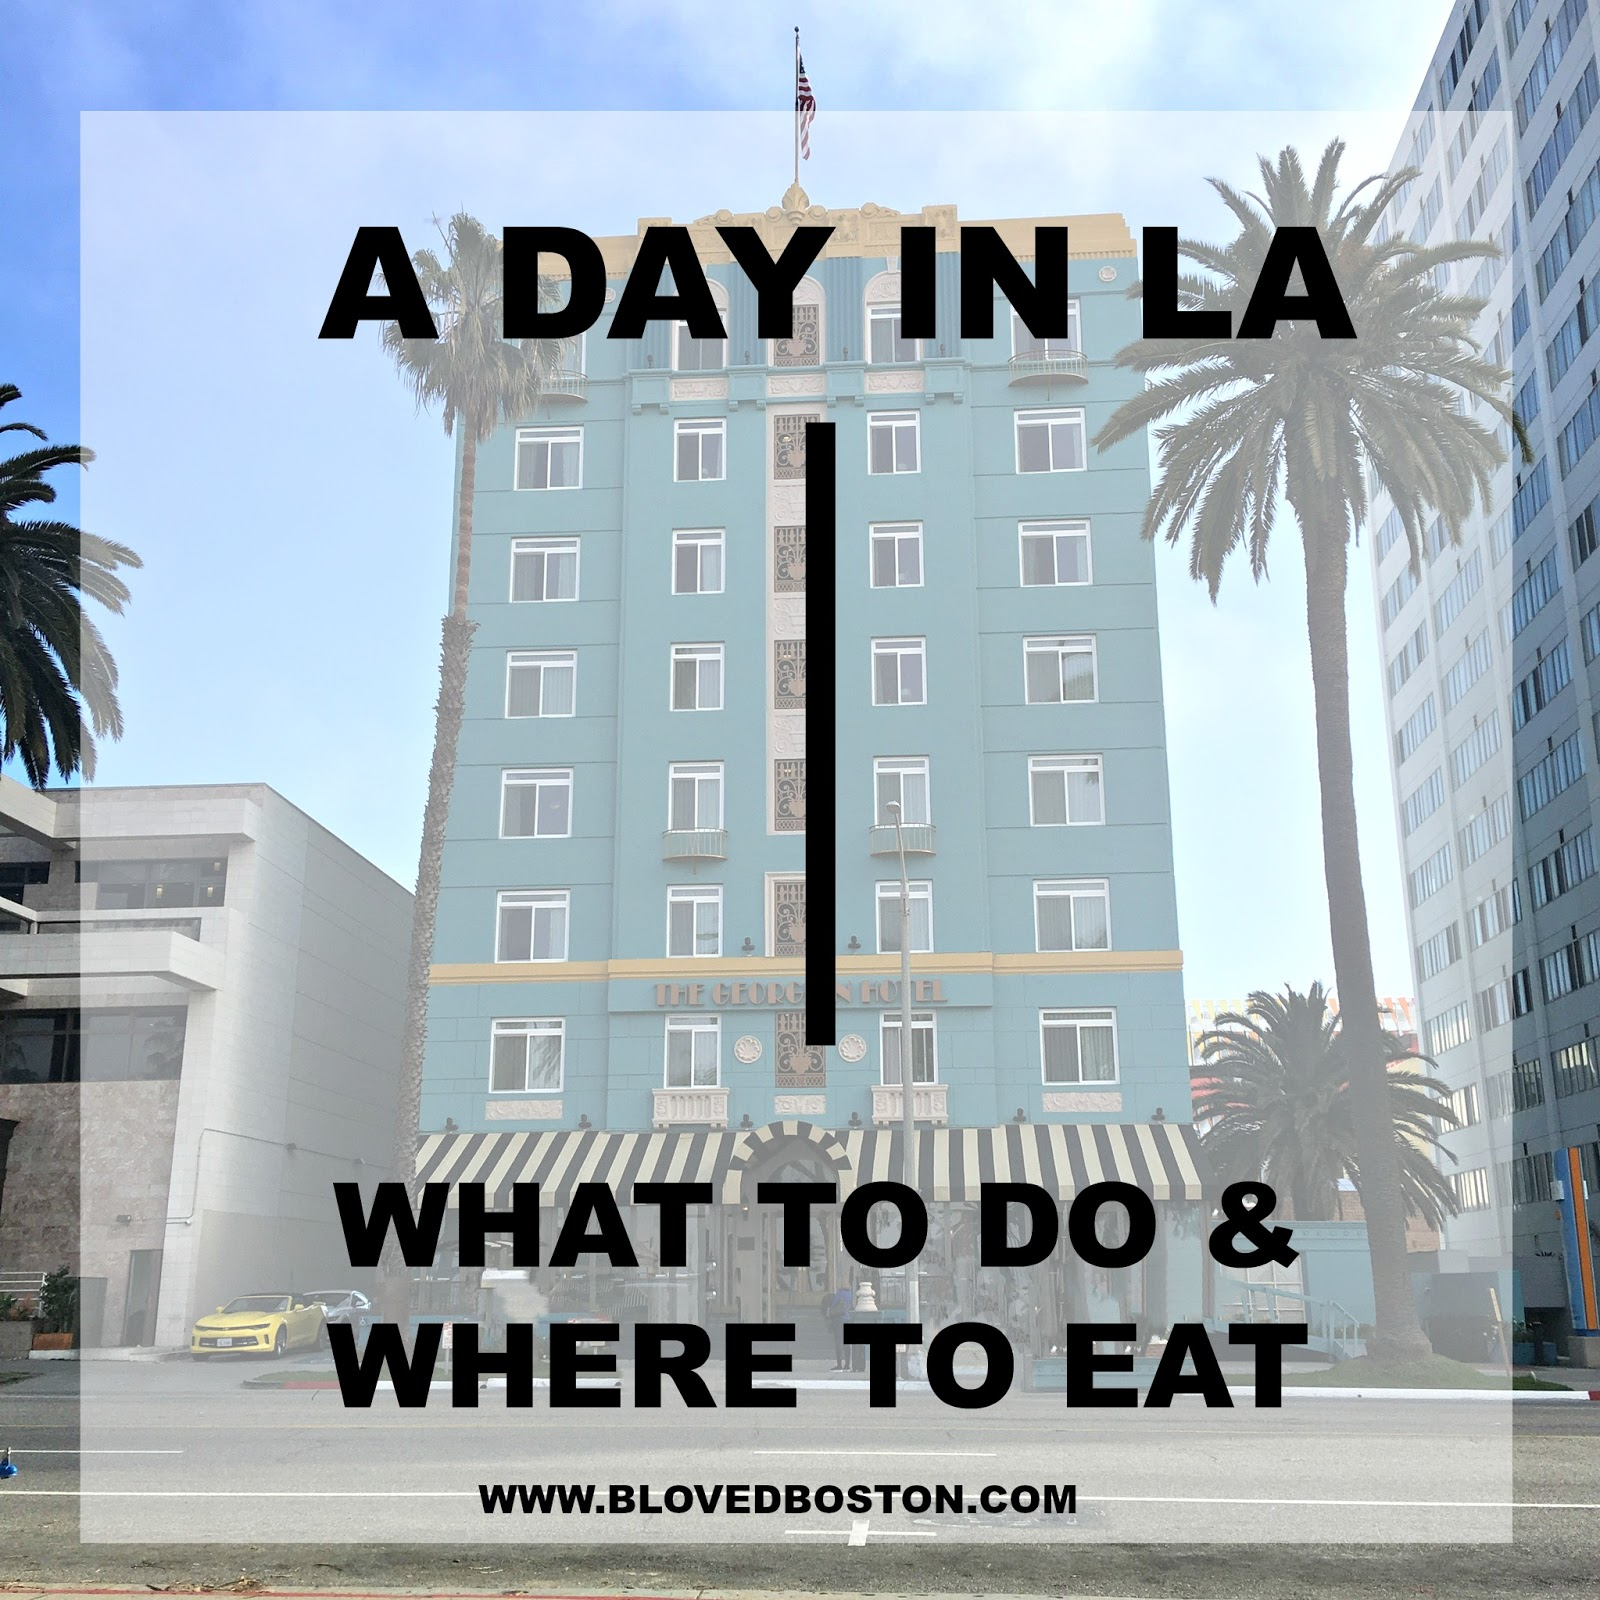 What to do in Los angeles, LA, one day in LA, where to eat in LA, Bardonna